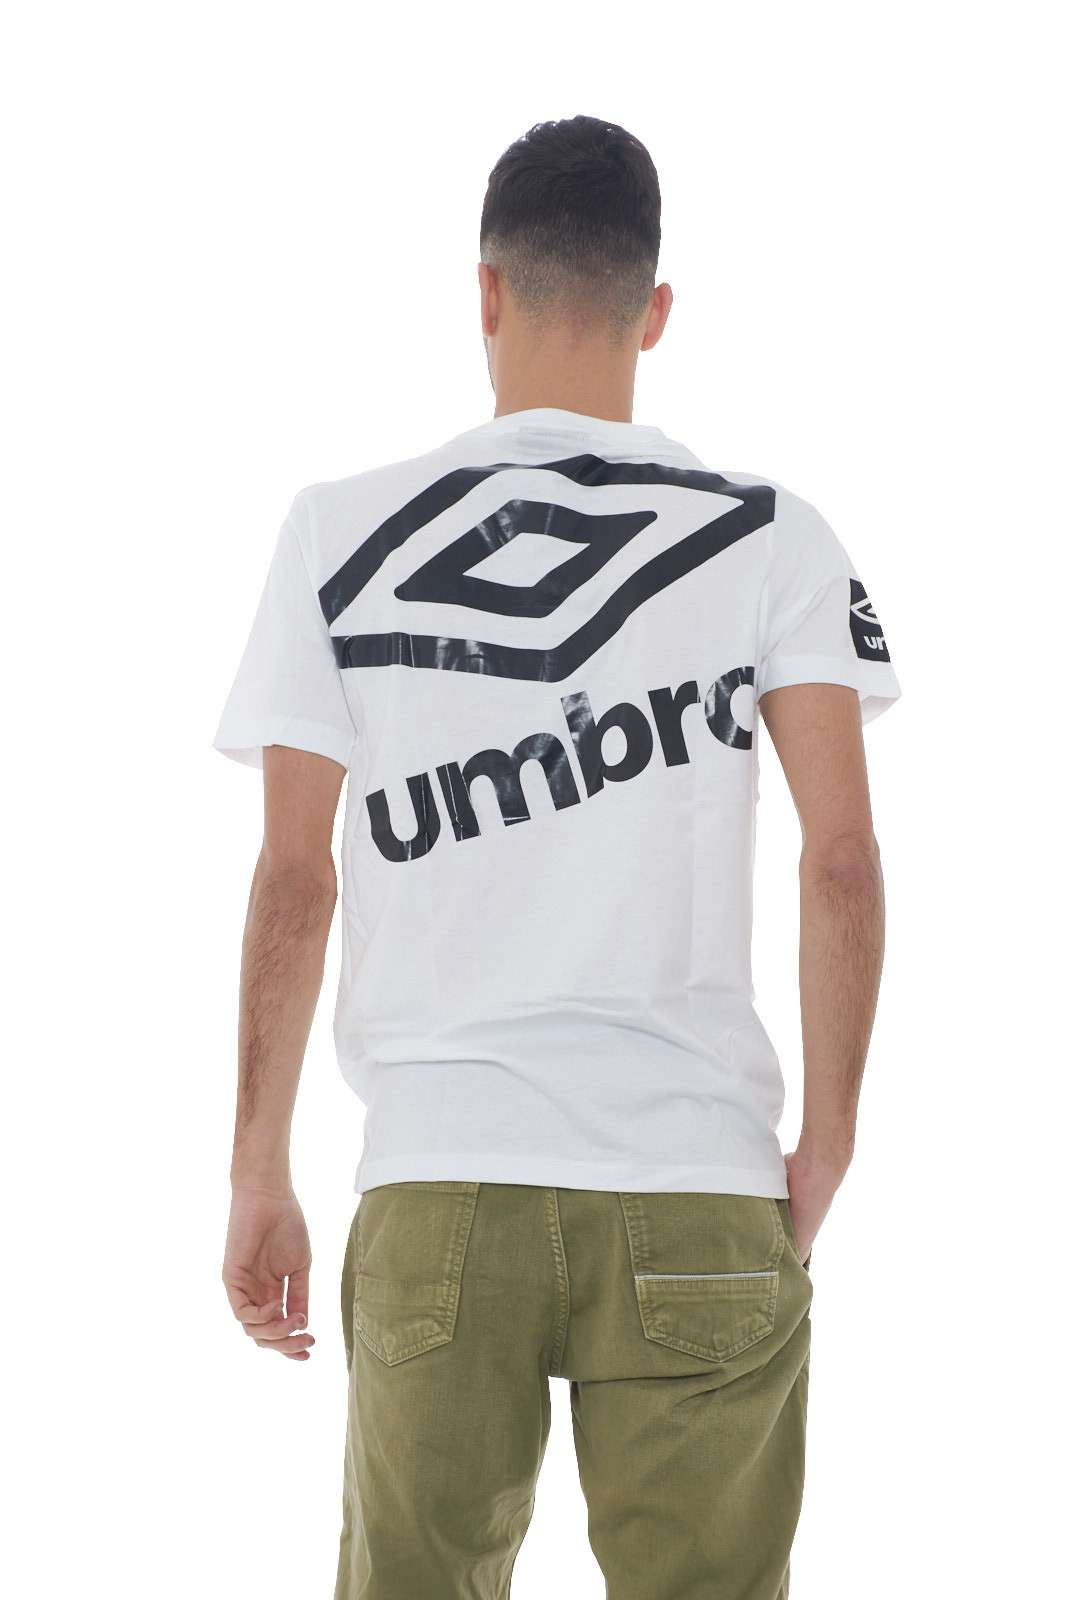 https://www.parmax.com/media/catalog/product/a/i/AI-outlet_parmax-t-shirt-uomo-Umbro-19ETPU0183-C_2.jpg